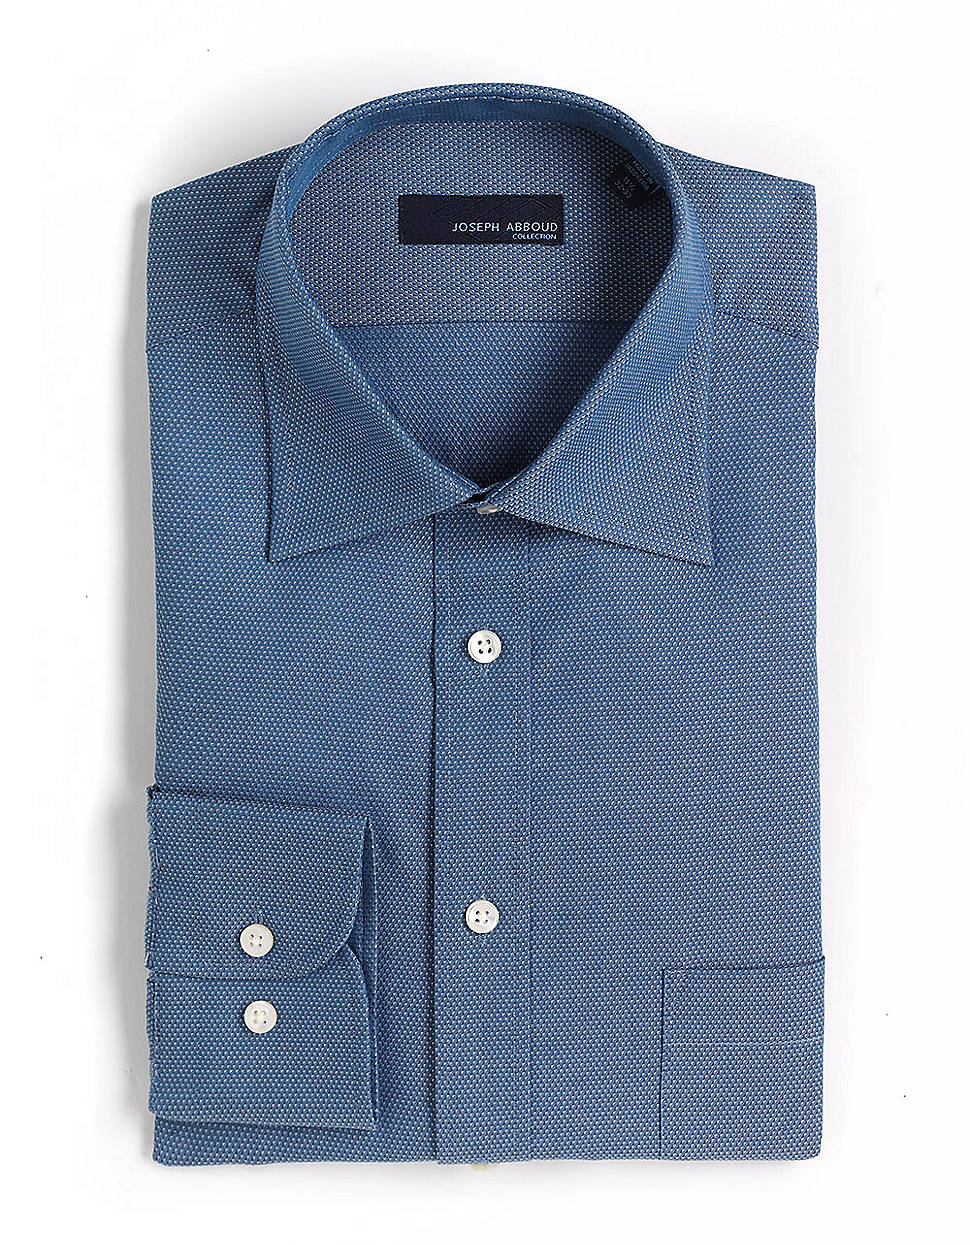 Joseph abboud cotton spread collar dress shirt in blue for for Mens wide collar dress shirts